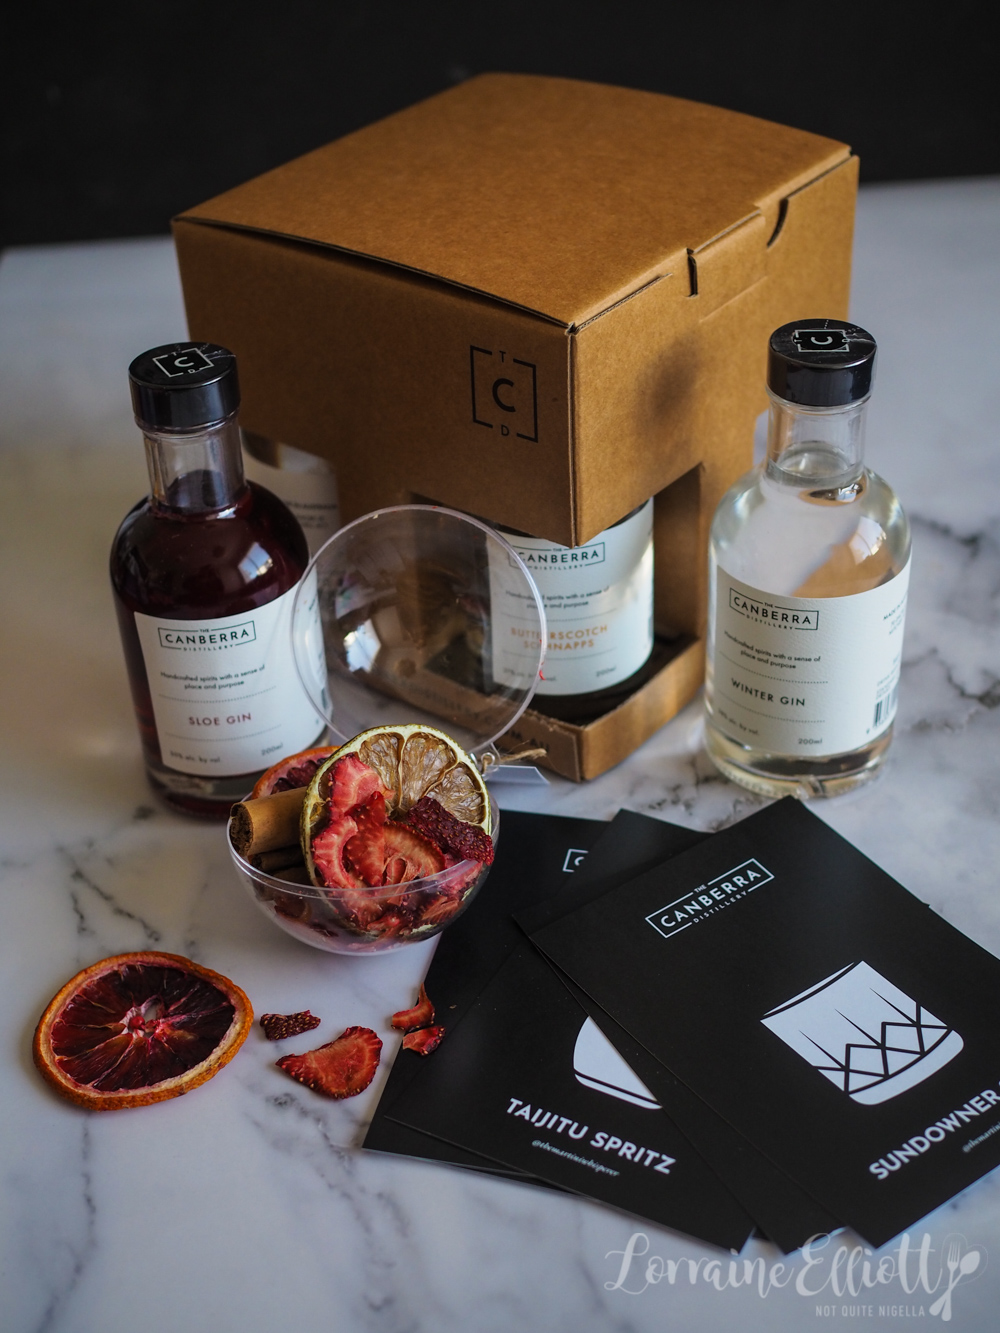 The Canberra Distillery's Cocktail Cube